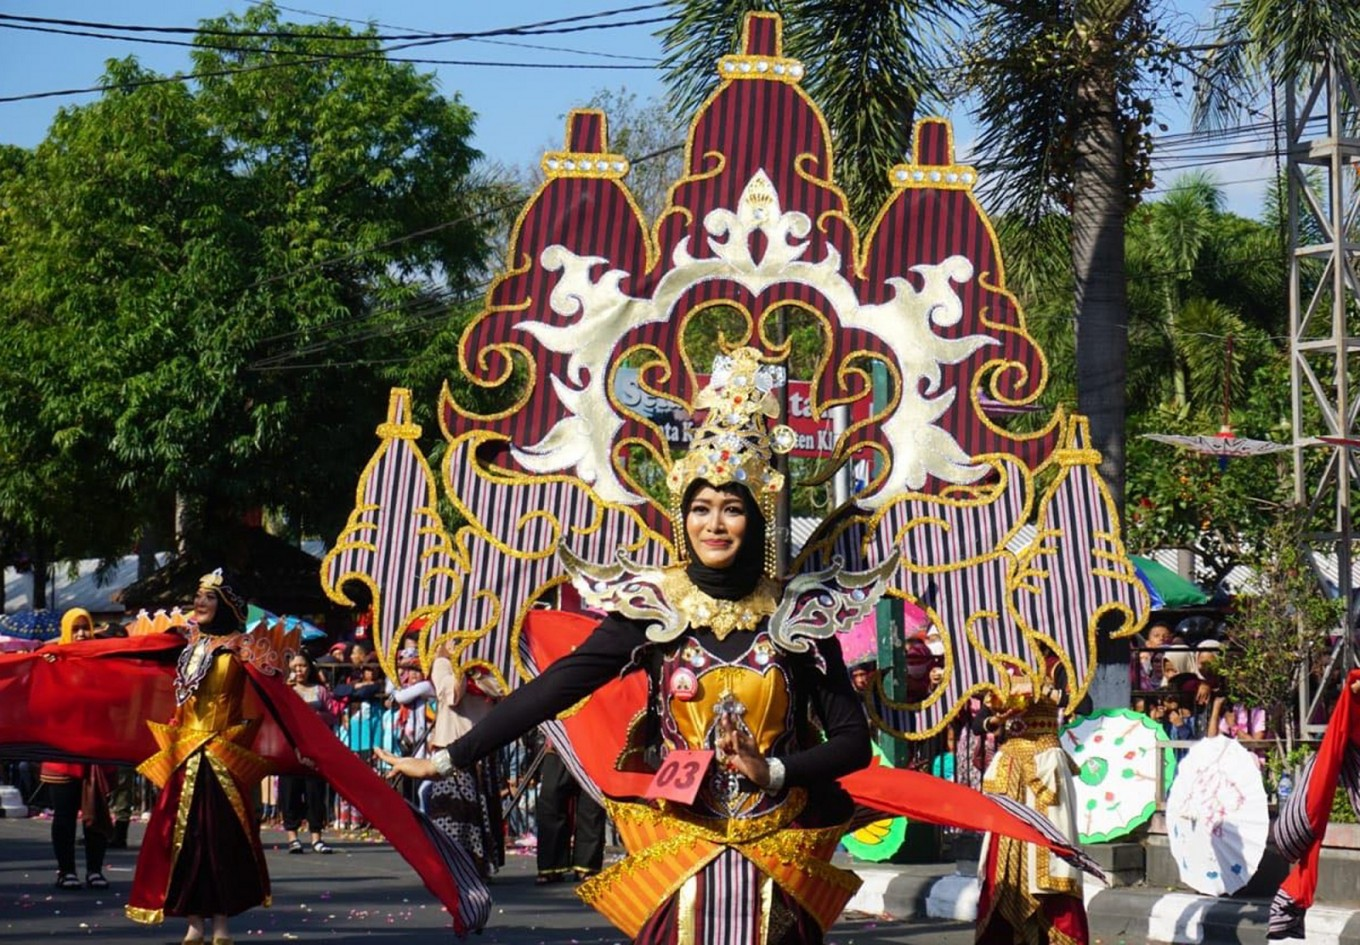 Klaten Lurik Carnival presents classic 'lurik' fabric designs transformed into modern and contemporary costumes.